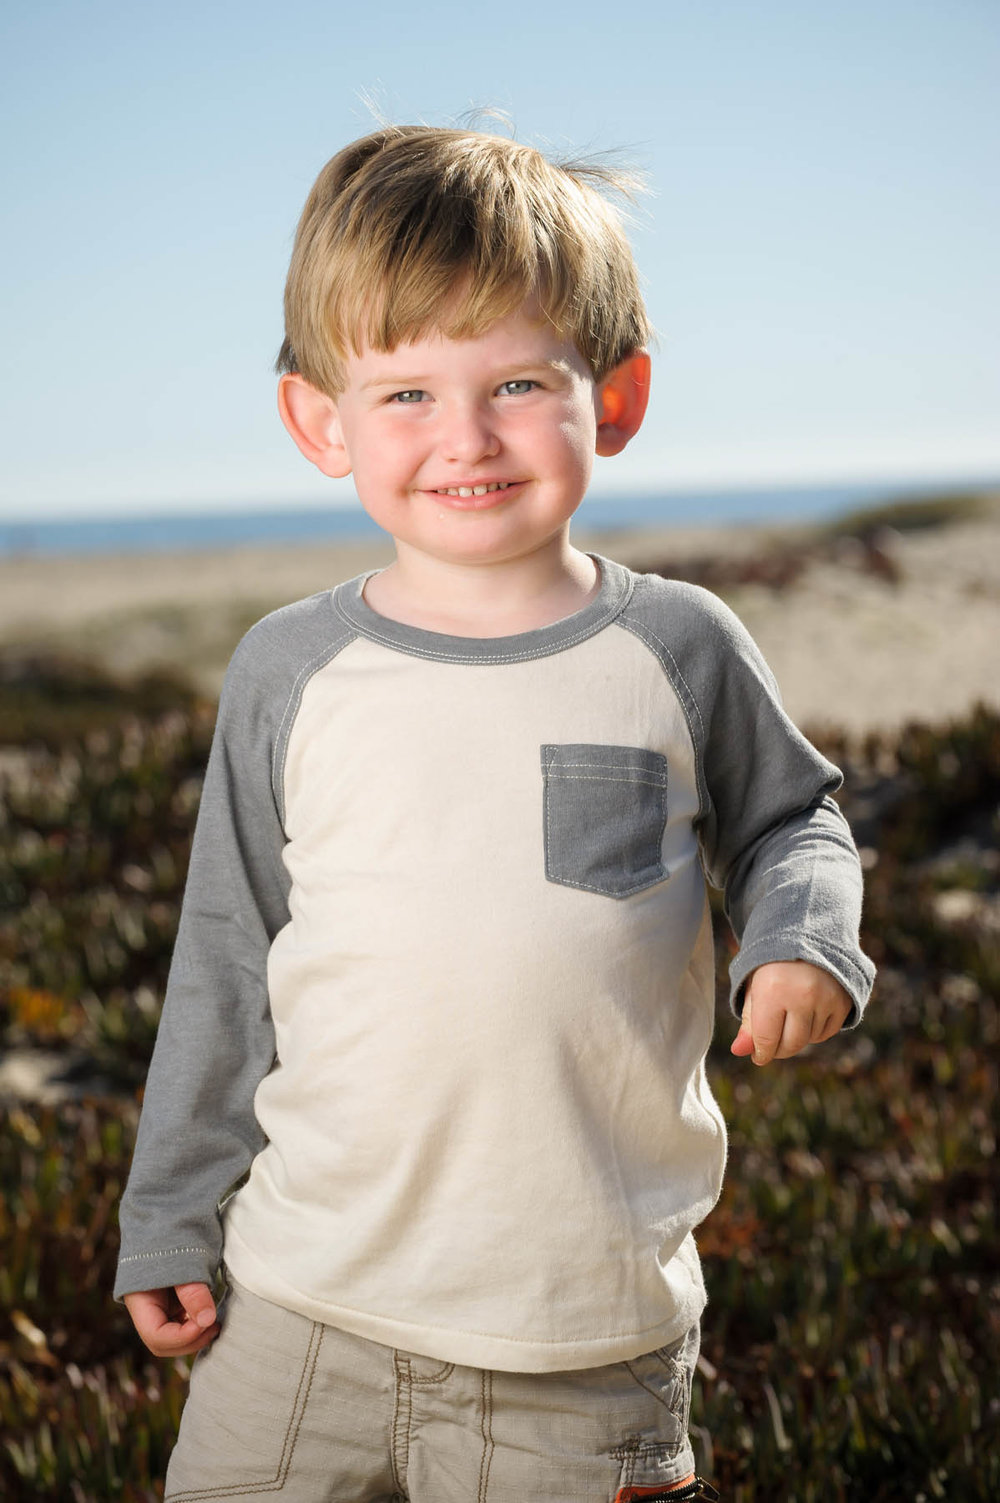 6770-d3_Protti_Seabright_Beach_Santa_Cruz_Family_Photography.jpg